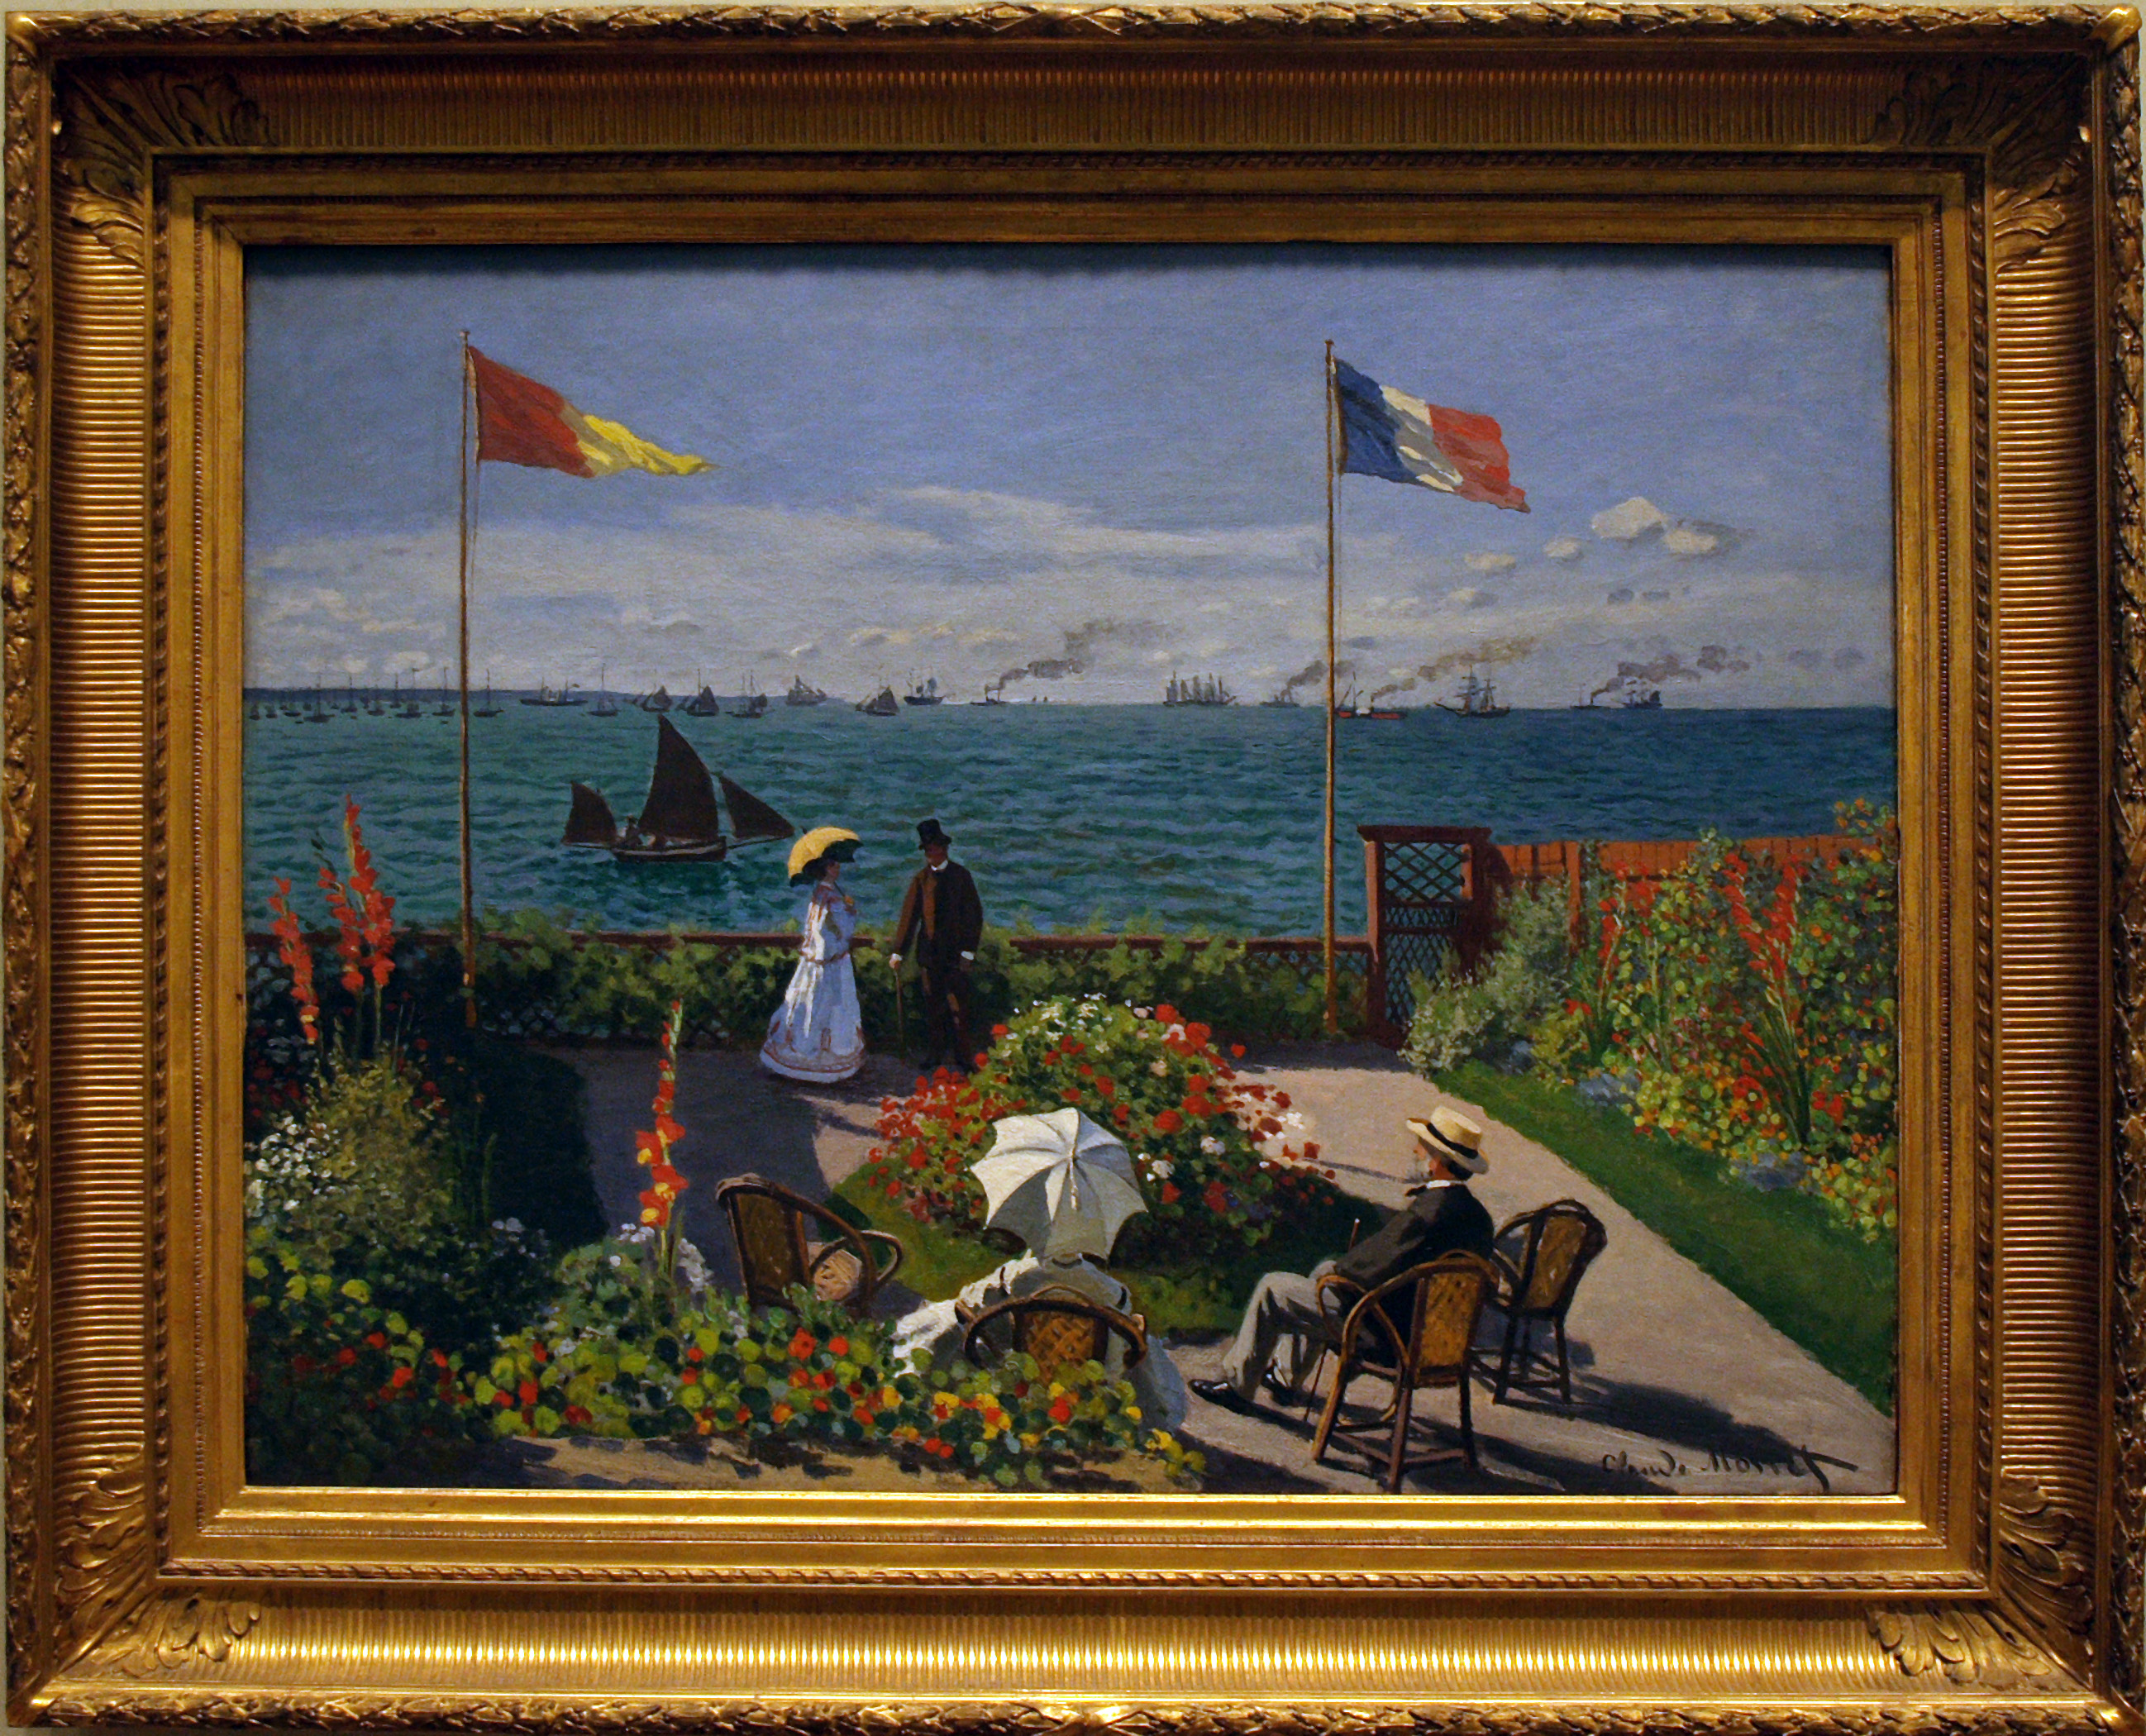 an overview of clause oscar monets painting terrace at sainte adresse